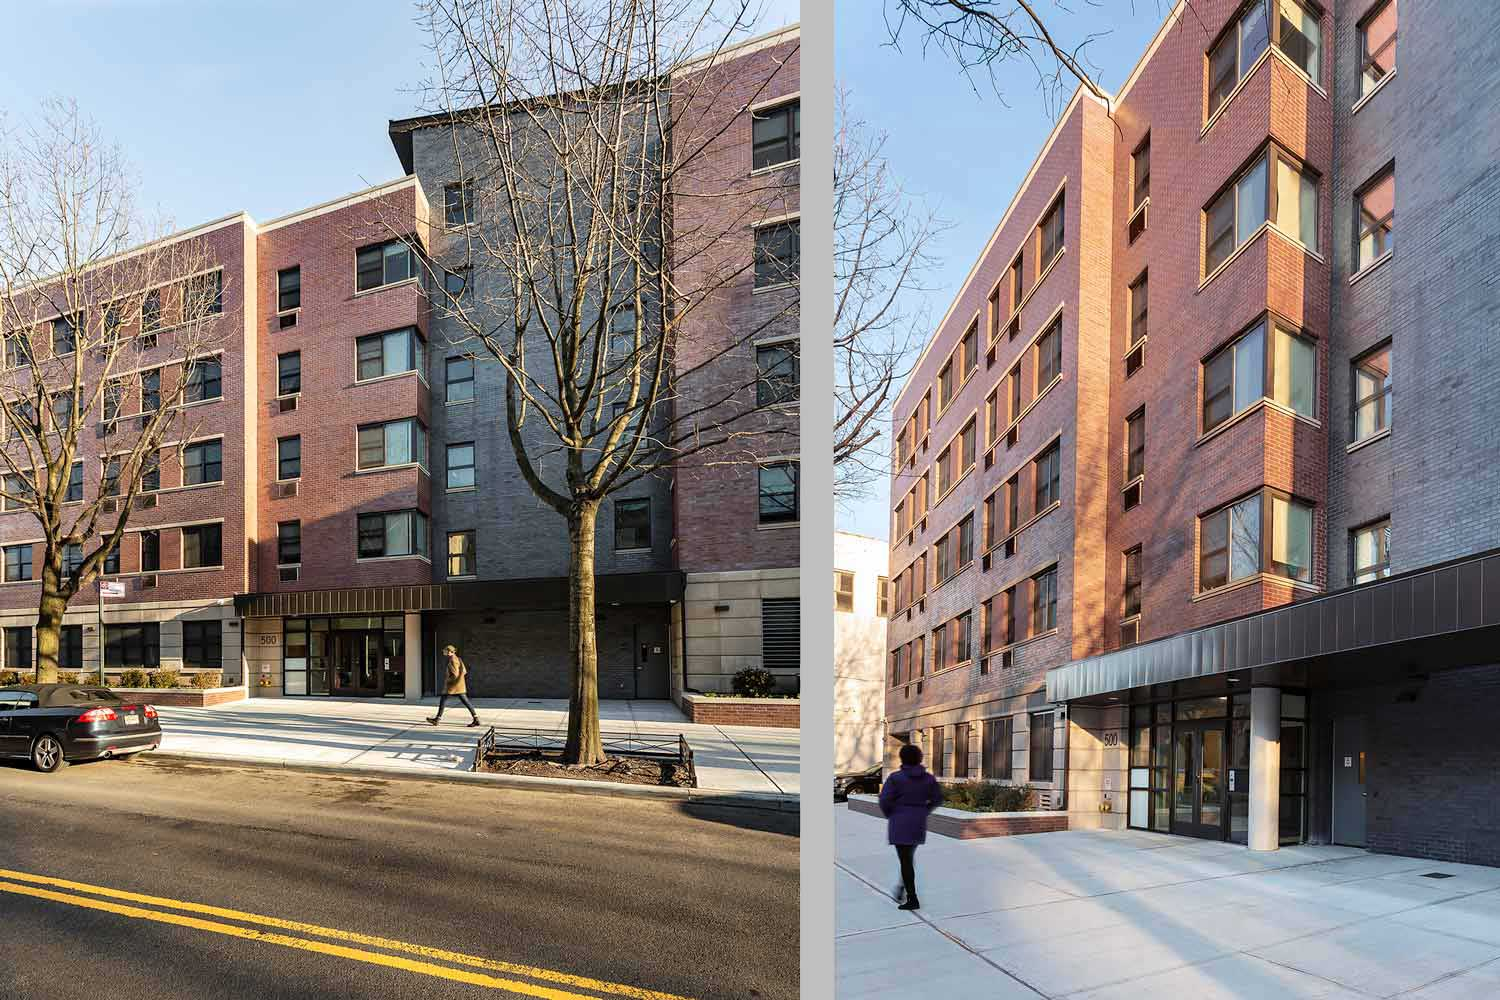 Entry at Gates Avenue Residence, green supportive housing new construction designed by OCV Architects